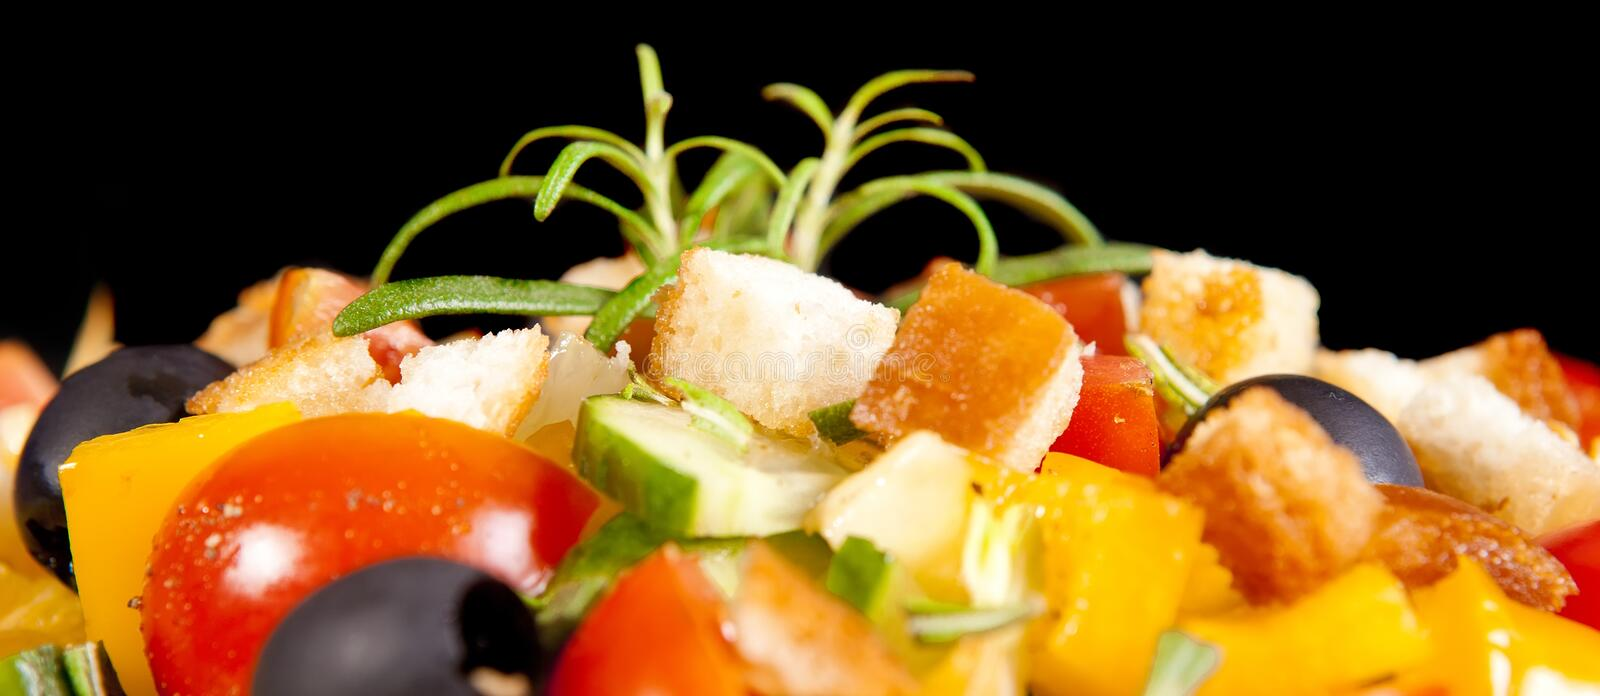 Download Healthy Vegetarian Salad  On White Stock Photo - Image: 24151280